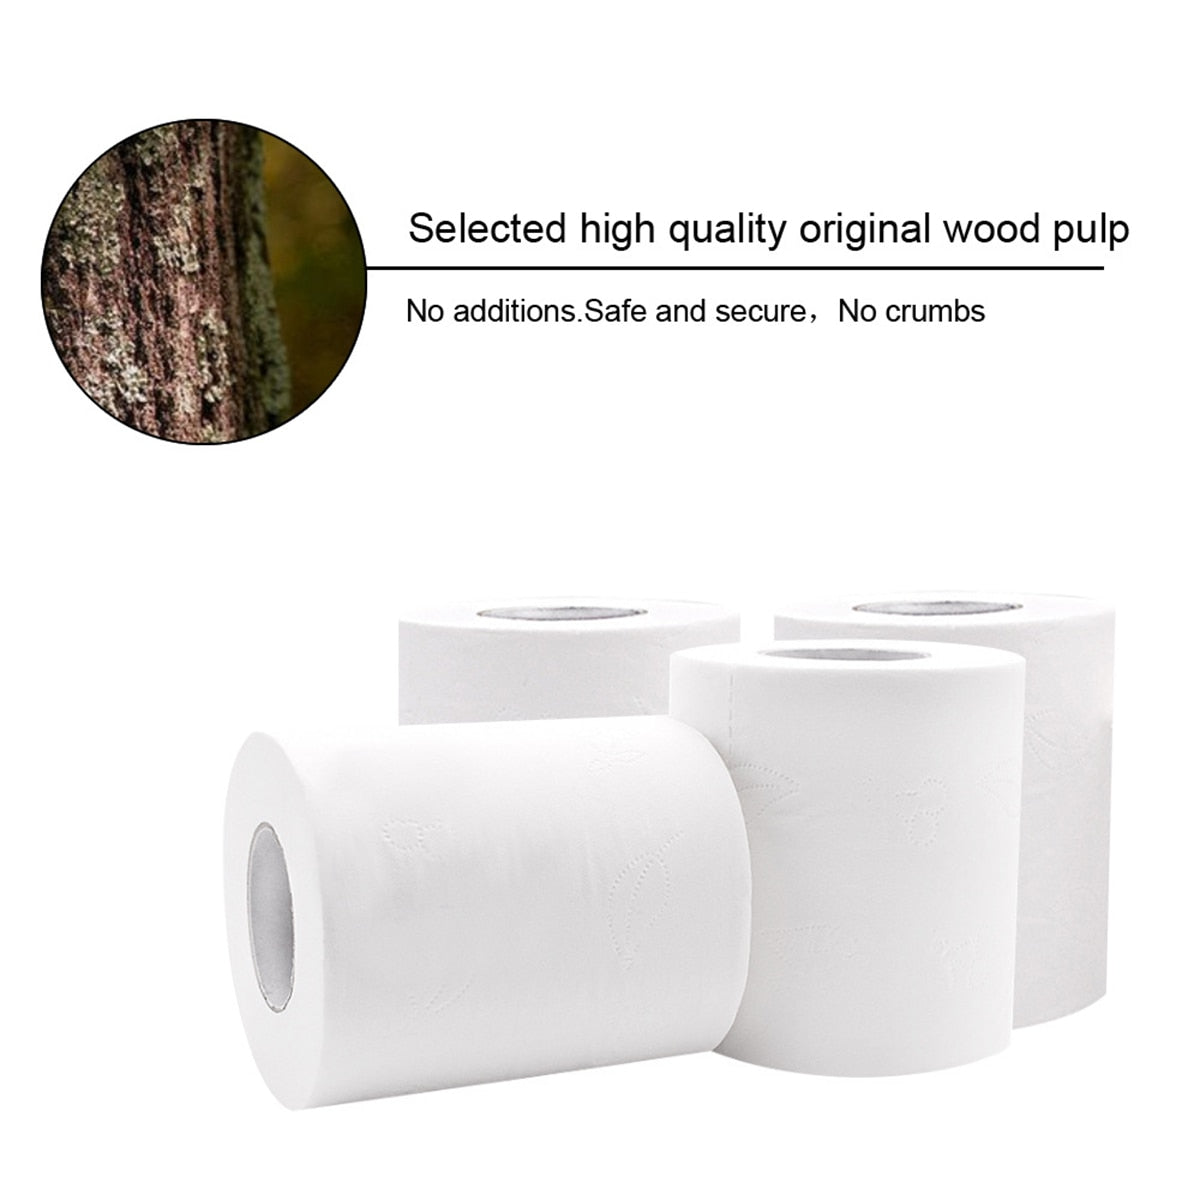 6 Rolls Of Soft Toilet Paper - POPHOLLY